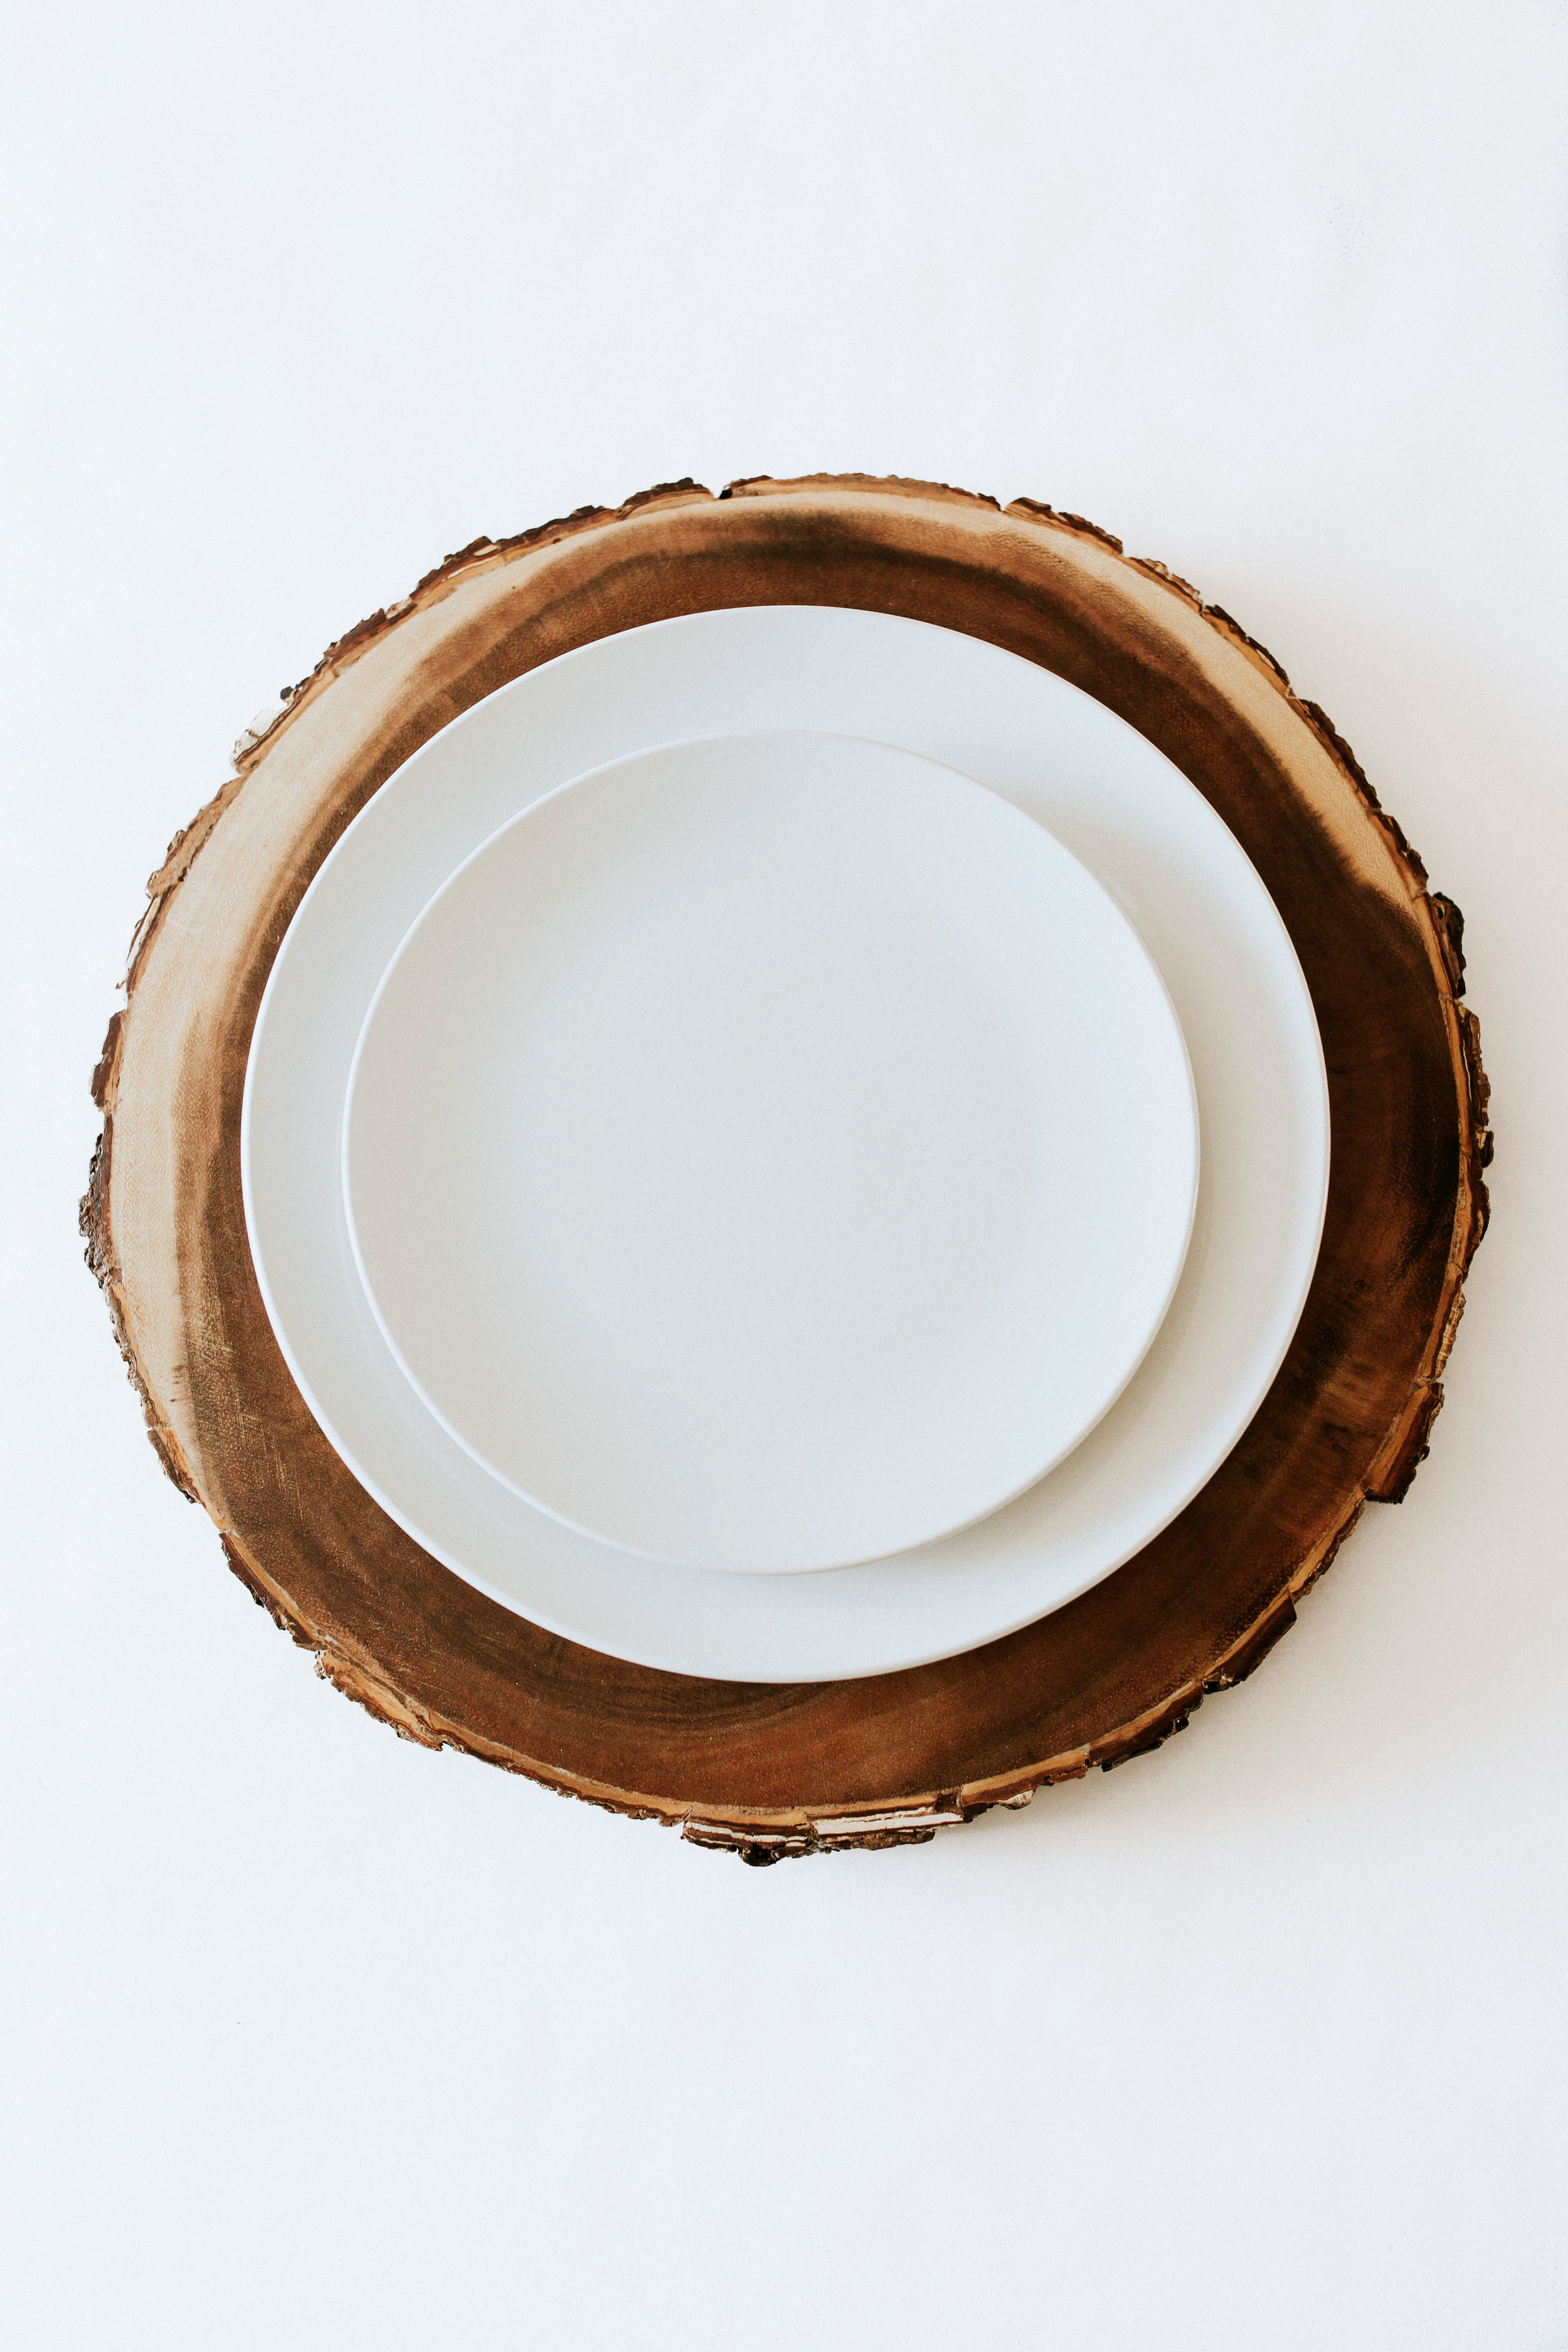 How to create / DIY a natural minimal table setting - wood charger and white plates